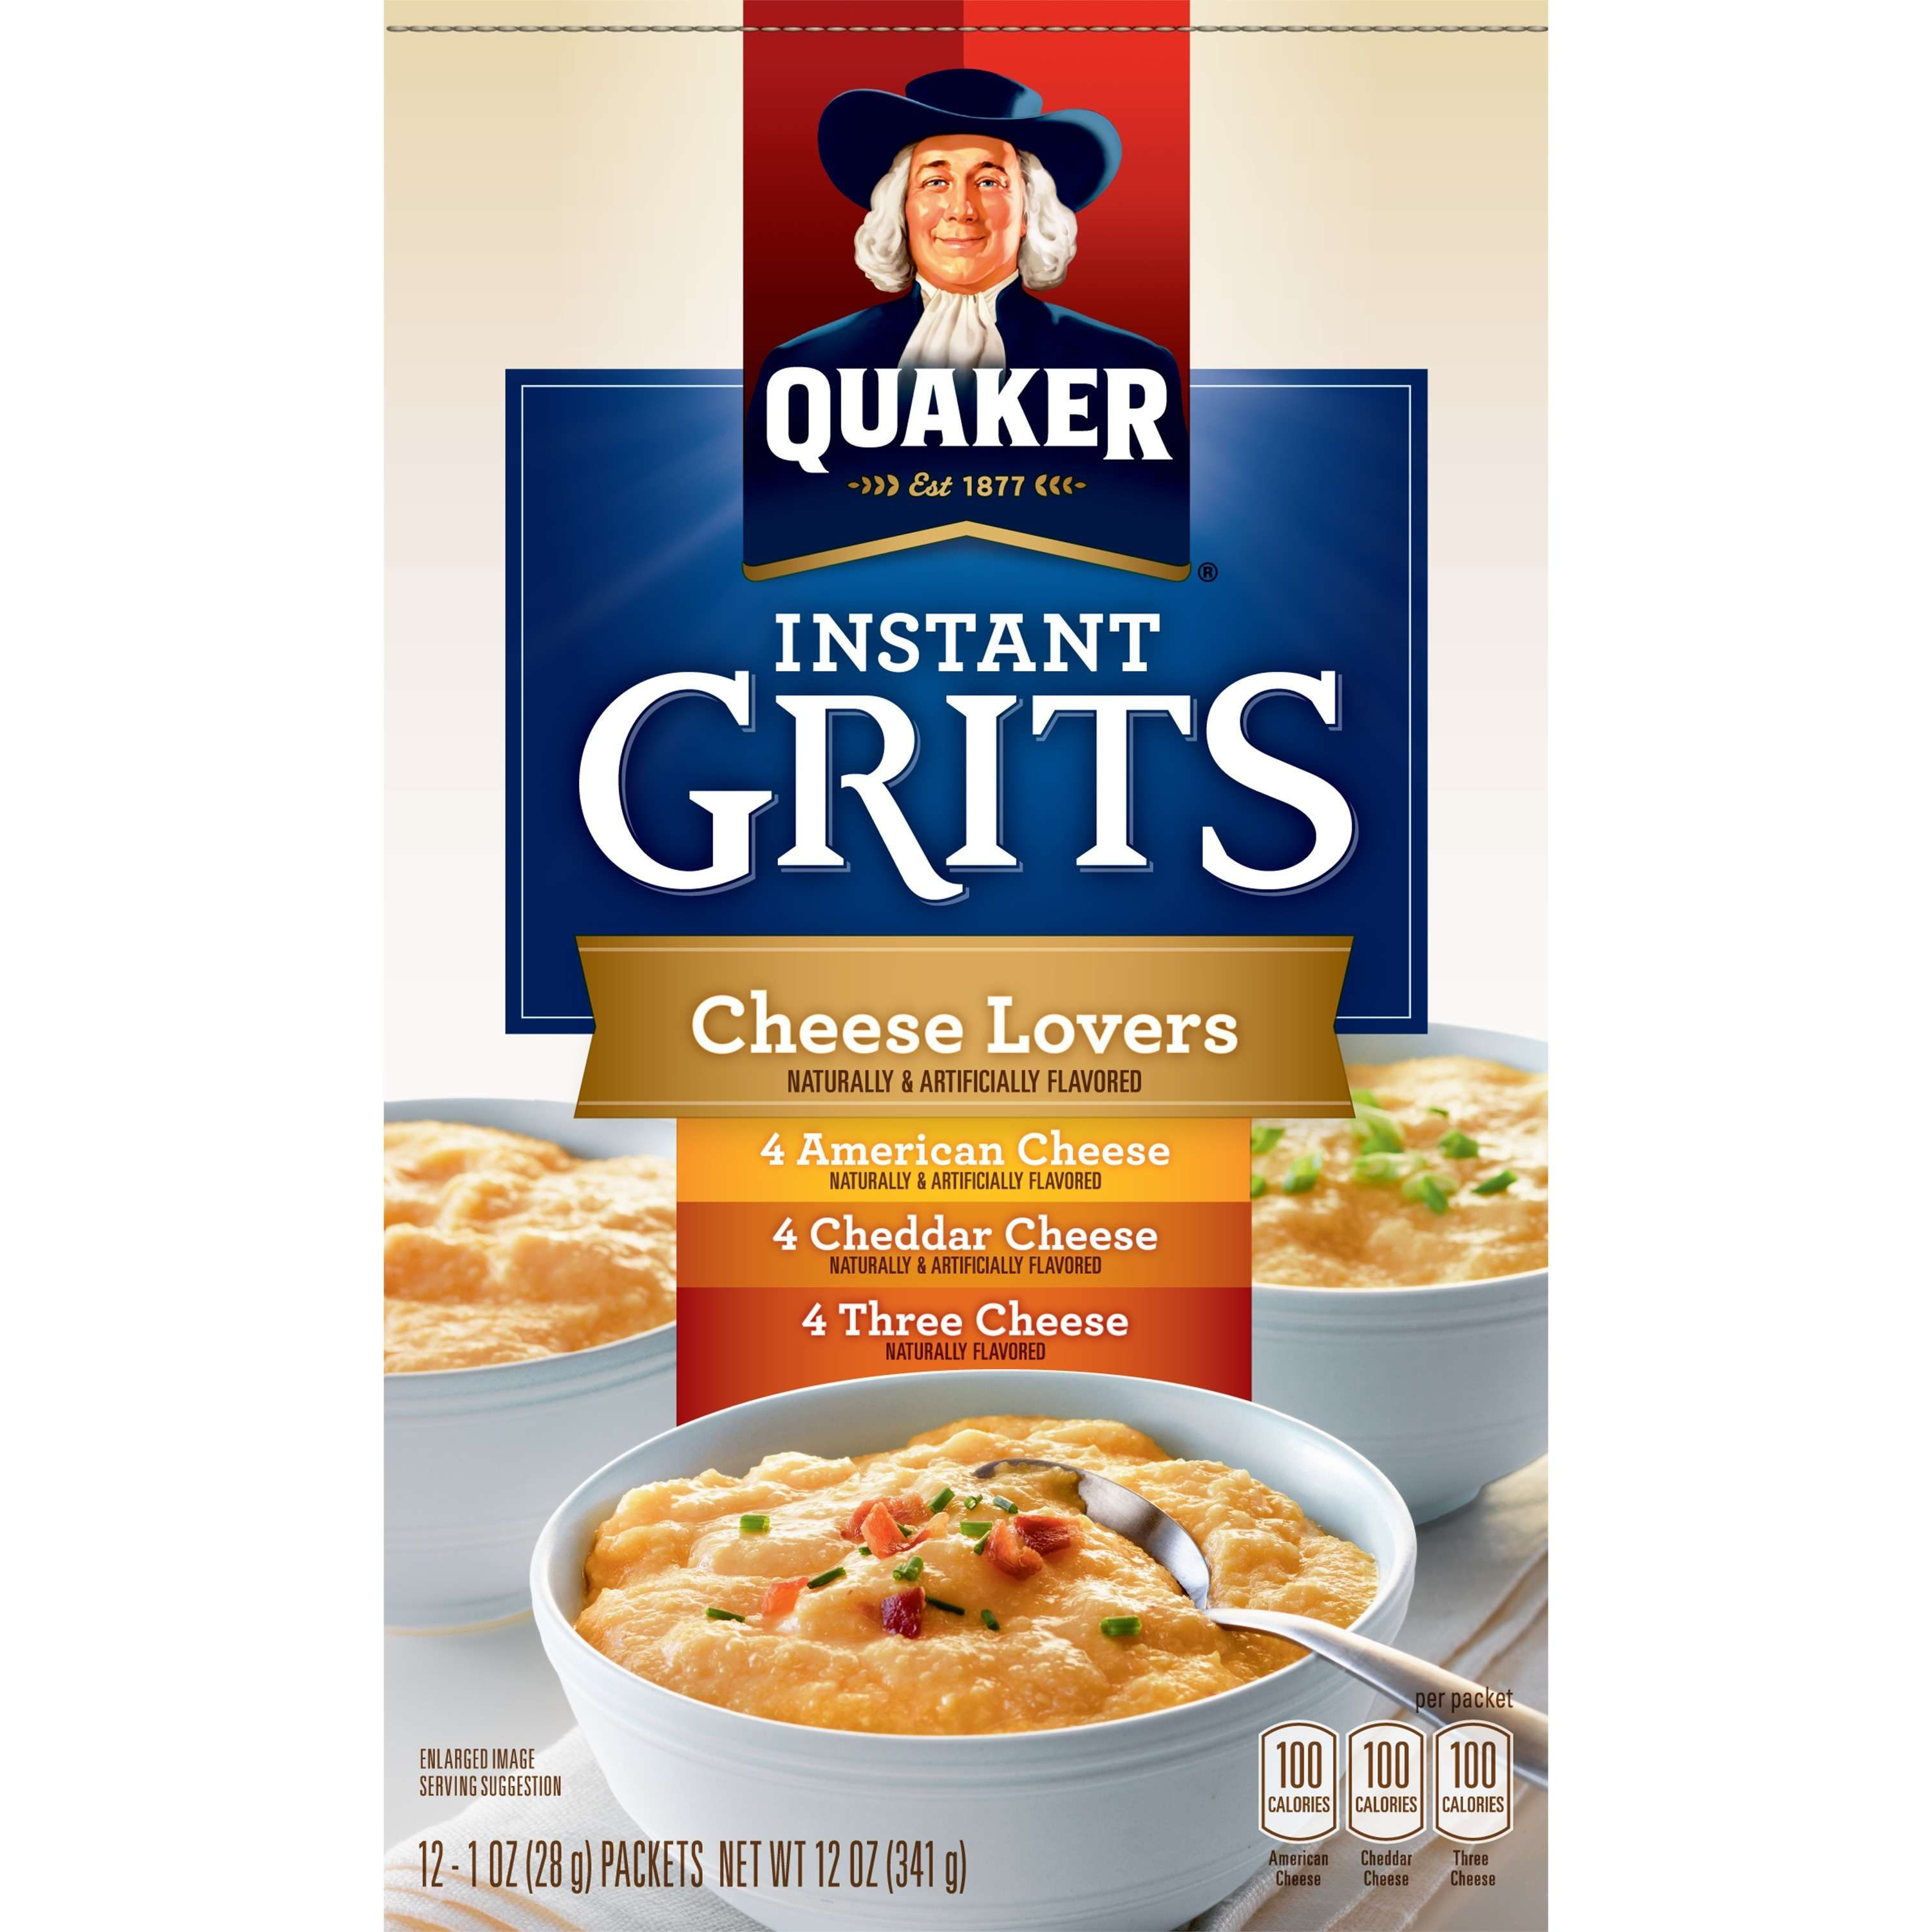 Quaker Instant Grits Cheese Lovers Variety Pack, 12 Count, 1 oz Packets